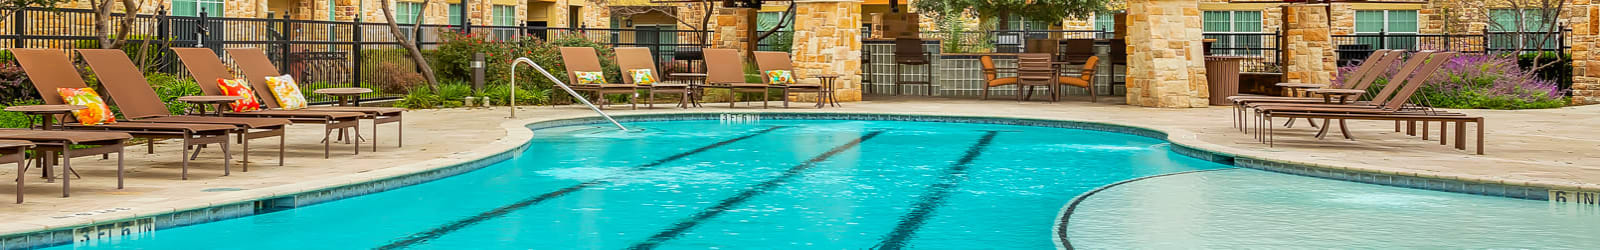 Amenities at Villas in Westover Hills in San Antonio, Texas